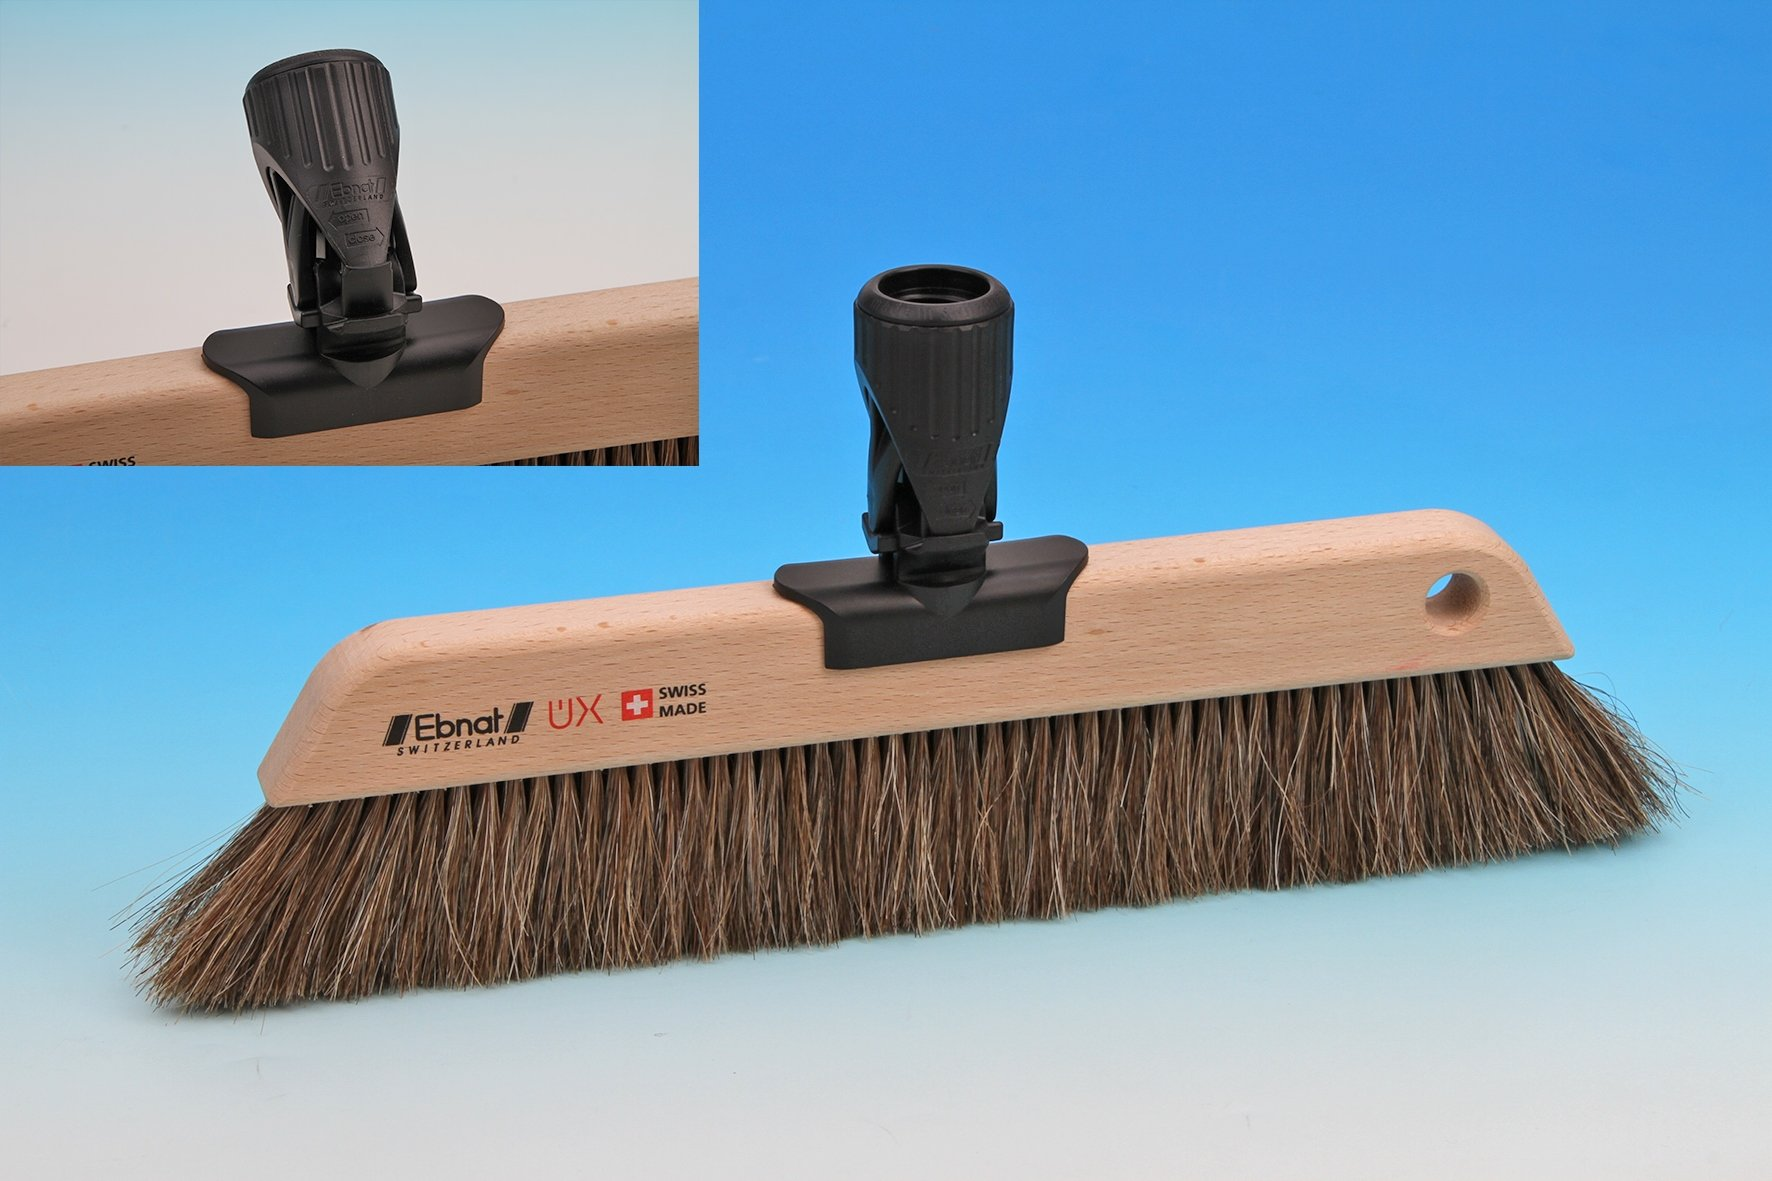 Nessentials Swiss UX Horse Hair Broom 32 cm with Handle by Nessentials (Image #1)